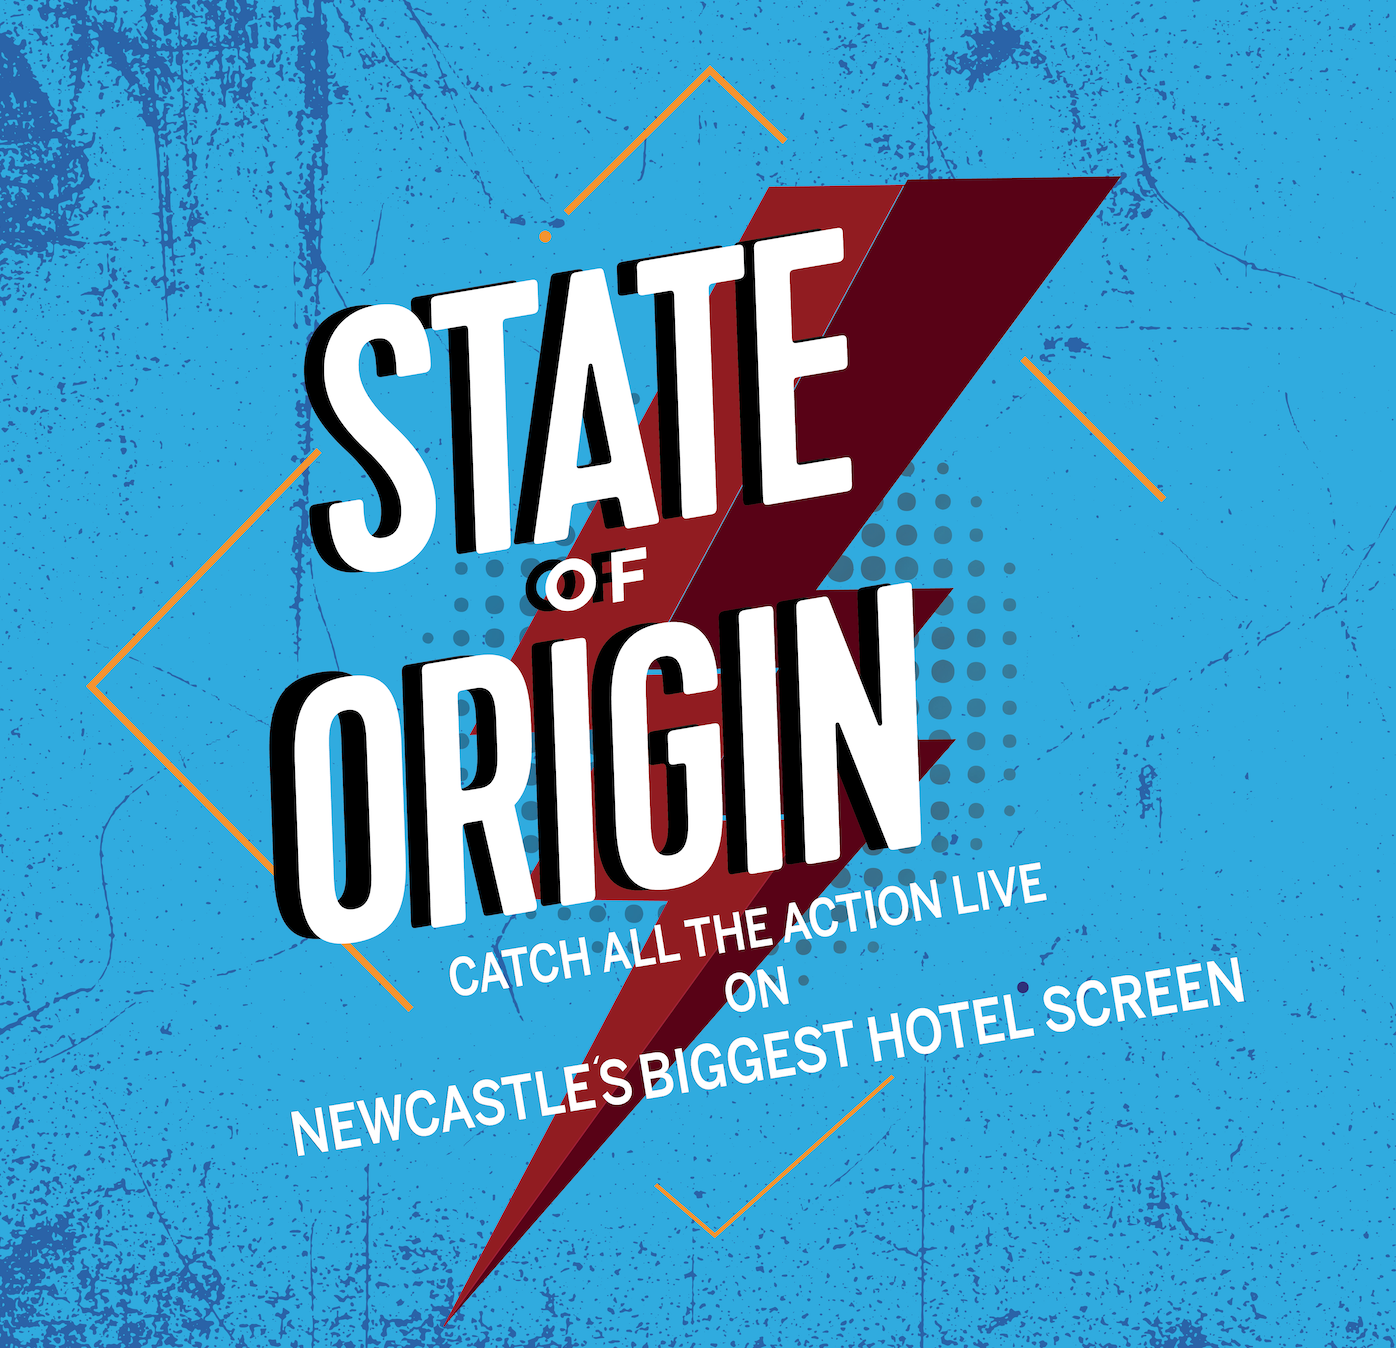 State Of Origin At The Lucky